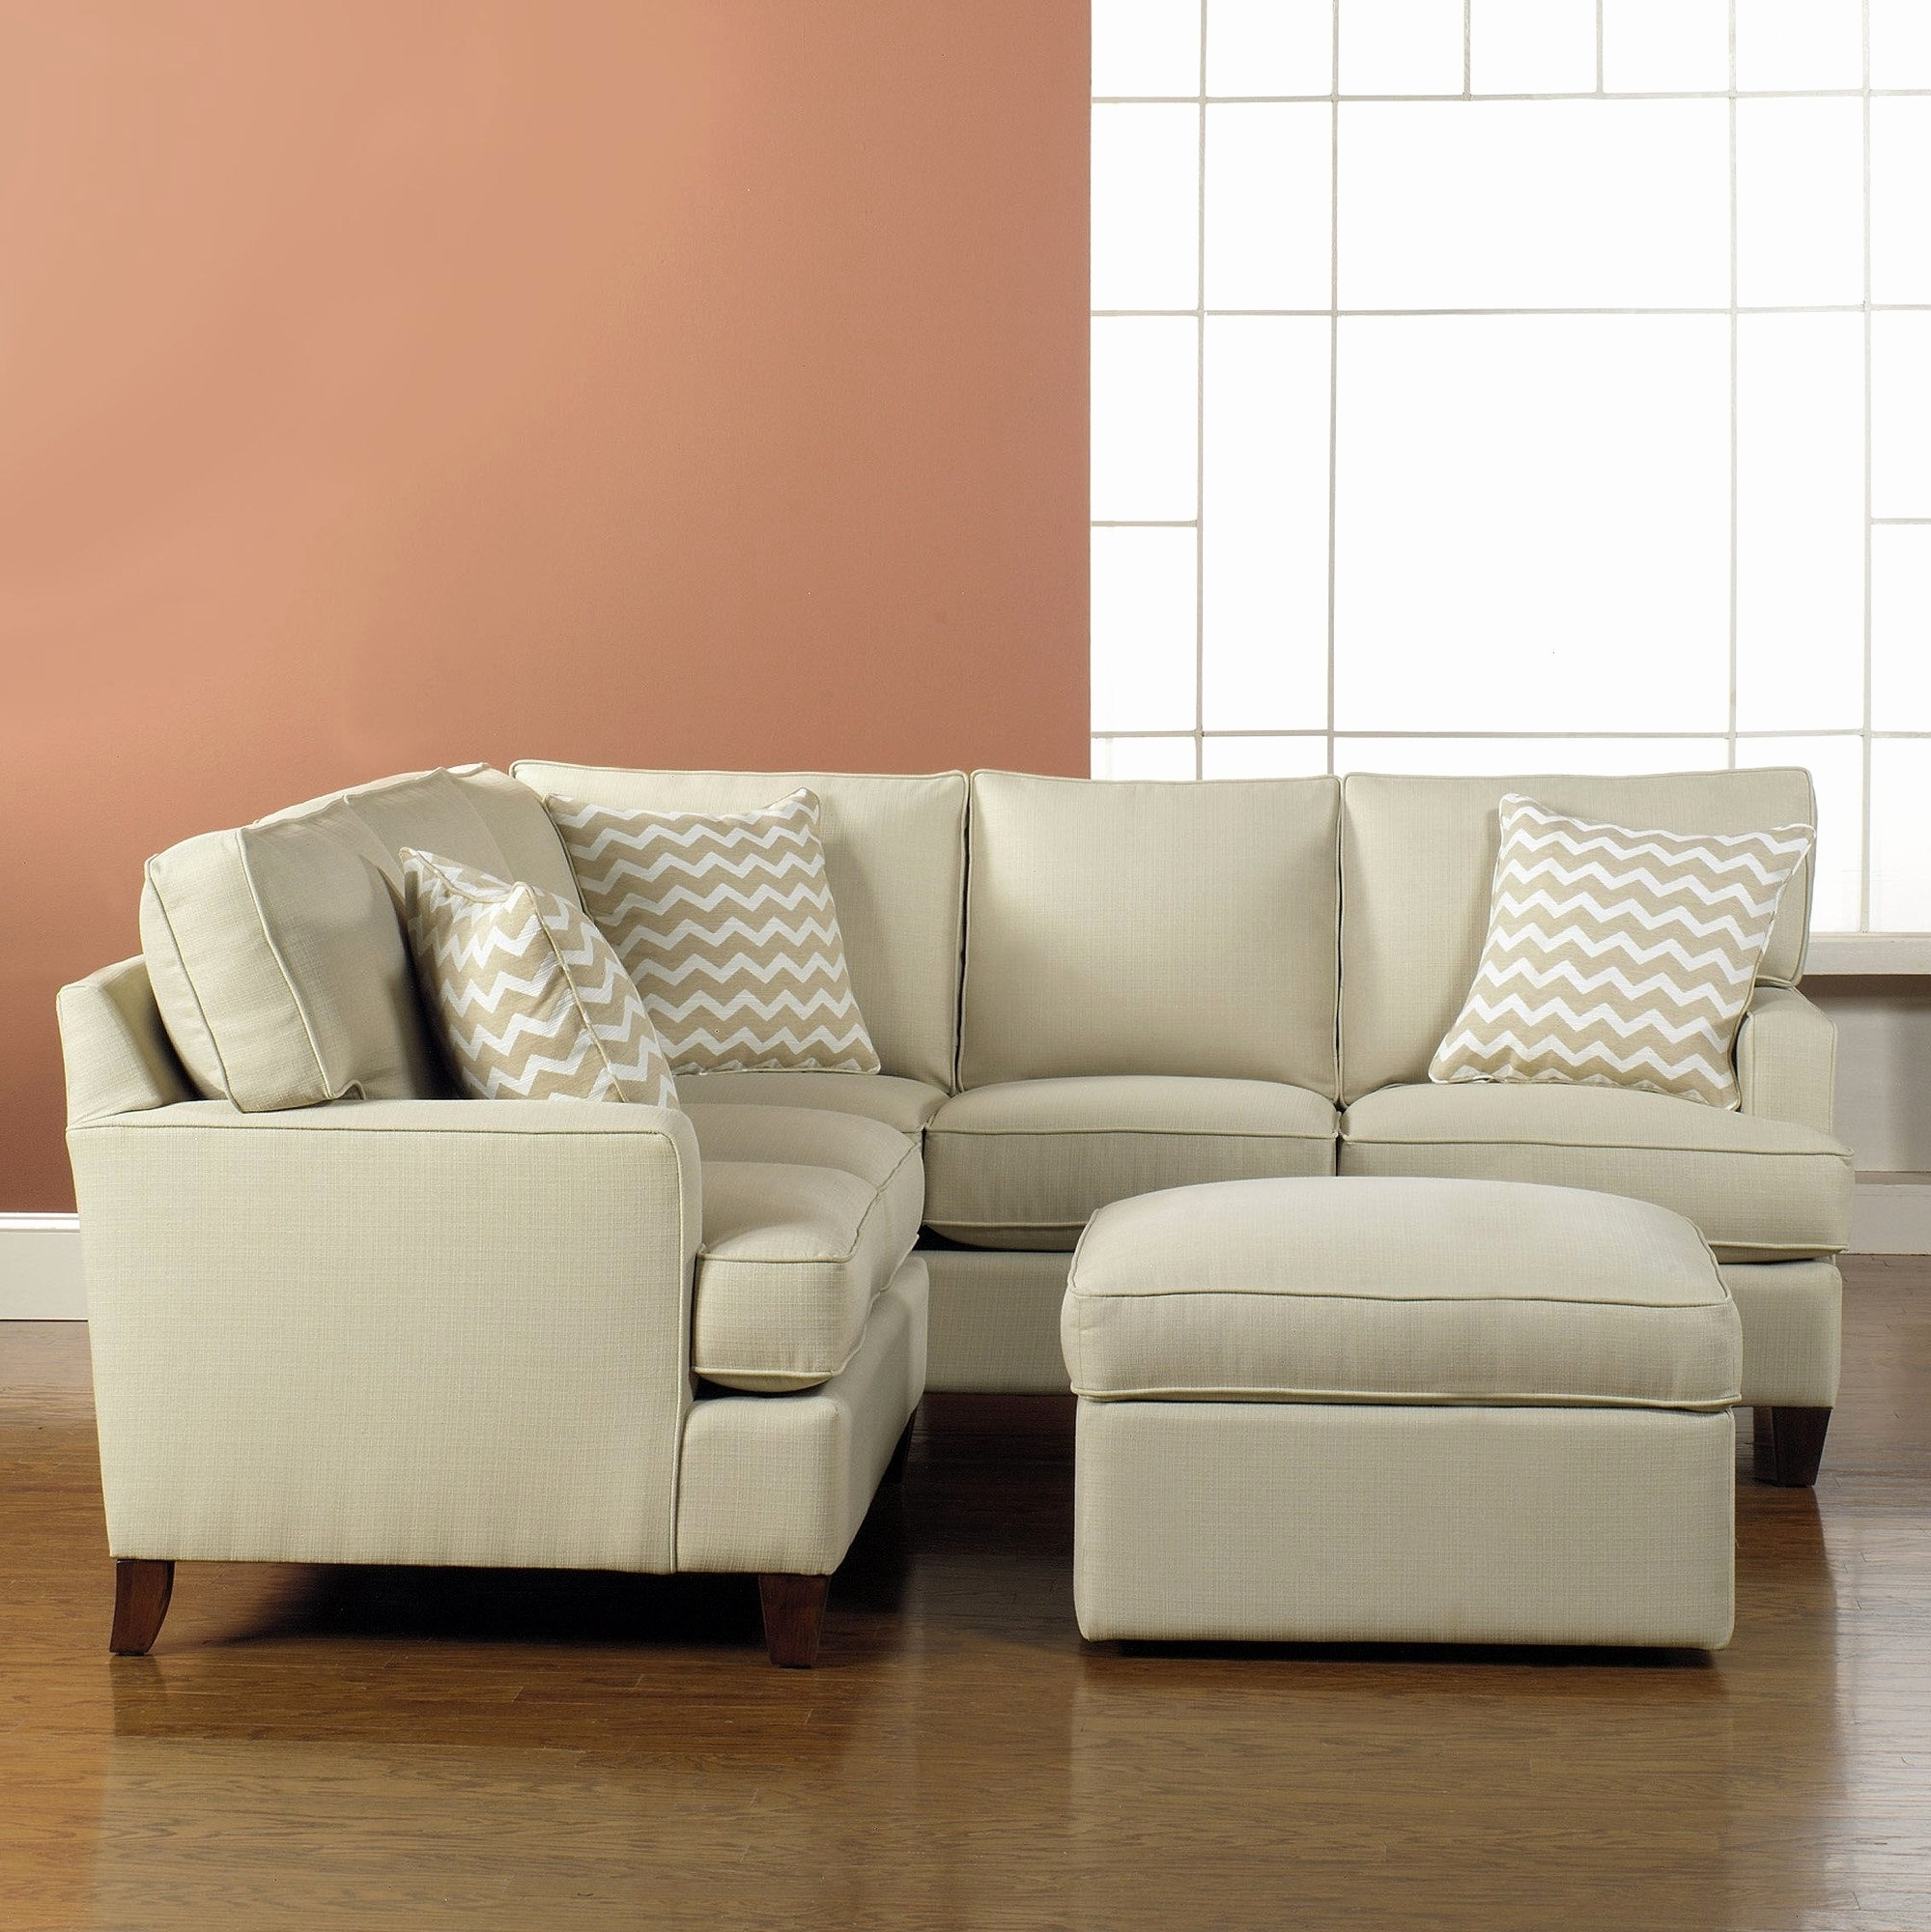 Small Space Sectional Sofa Elegant Sectional Sofa Design Awesome Within Well Known Tiny Sofas (View 13 of 20)